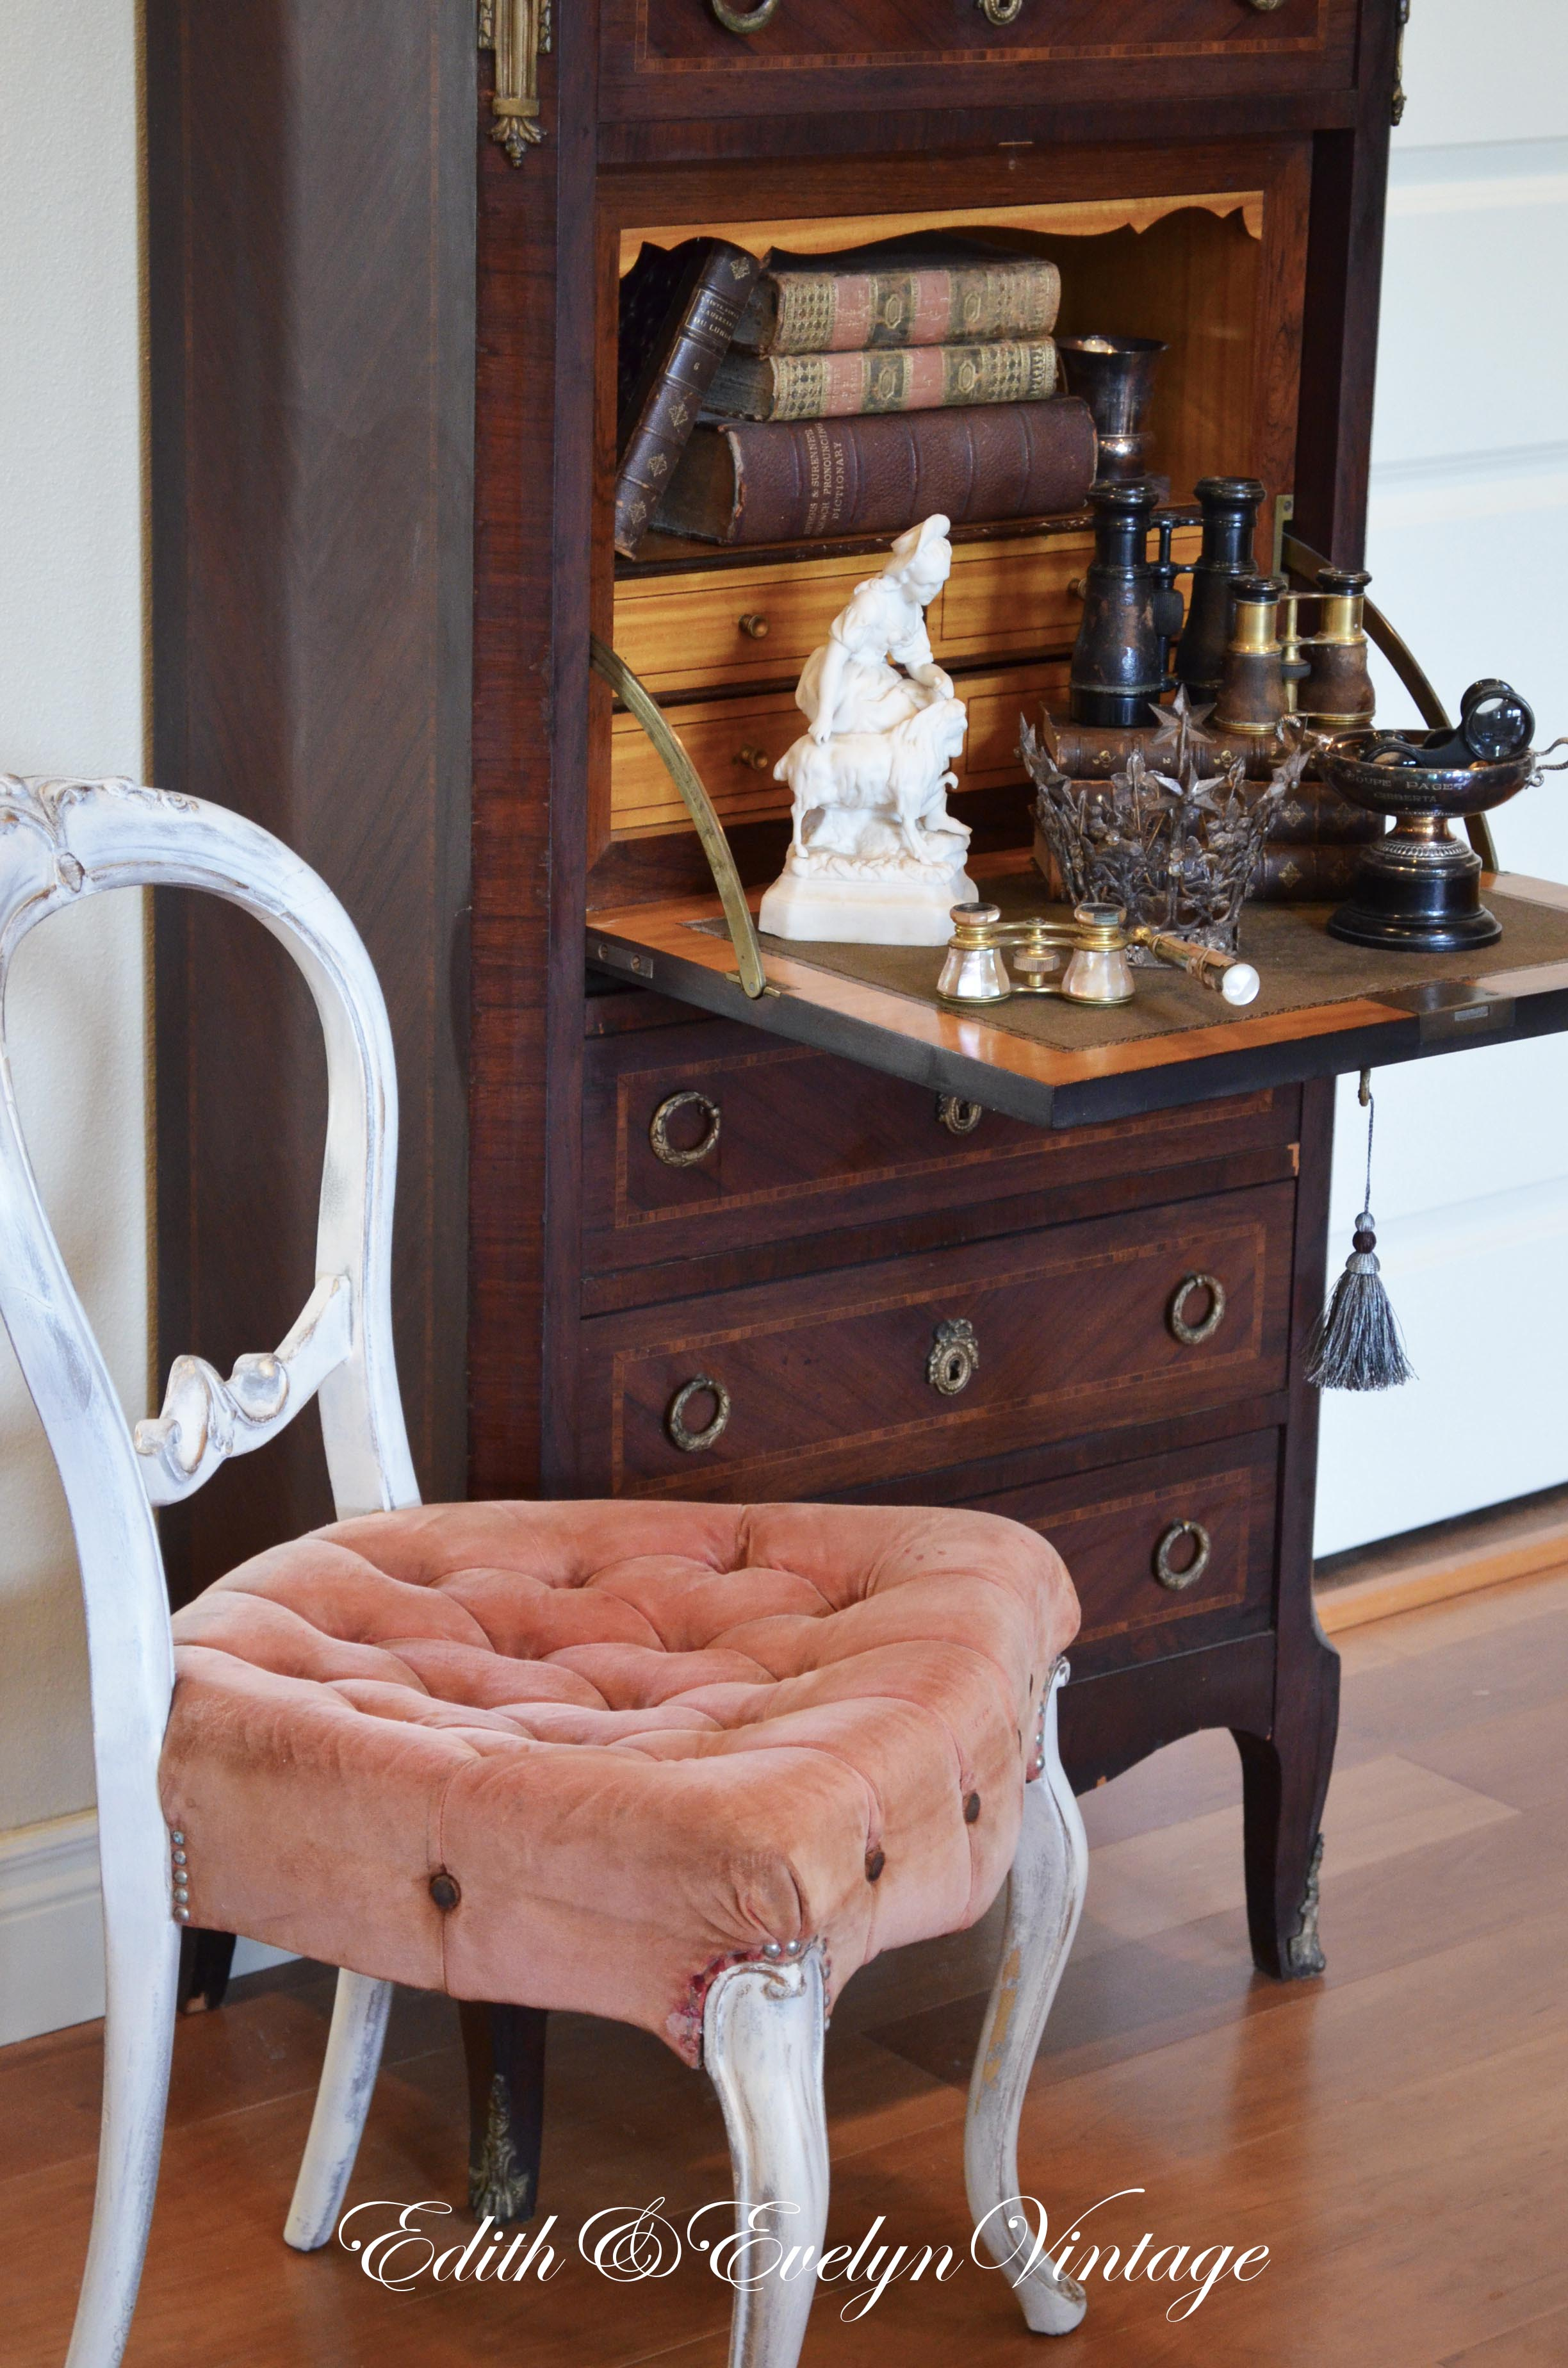 Antique french chair - Dsc_0847 Jpg